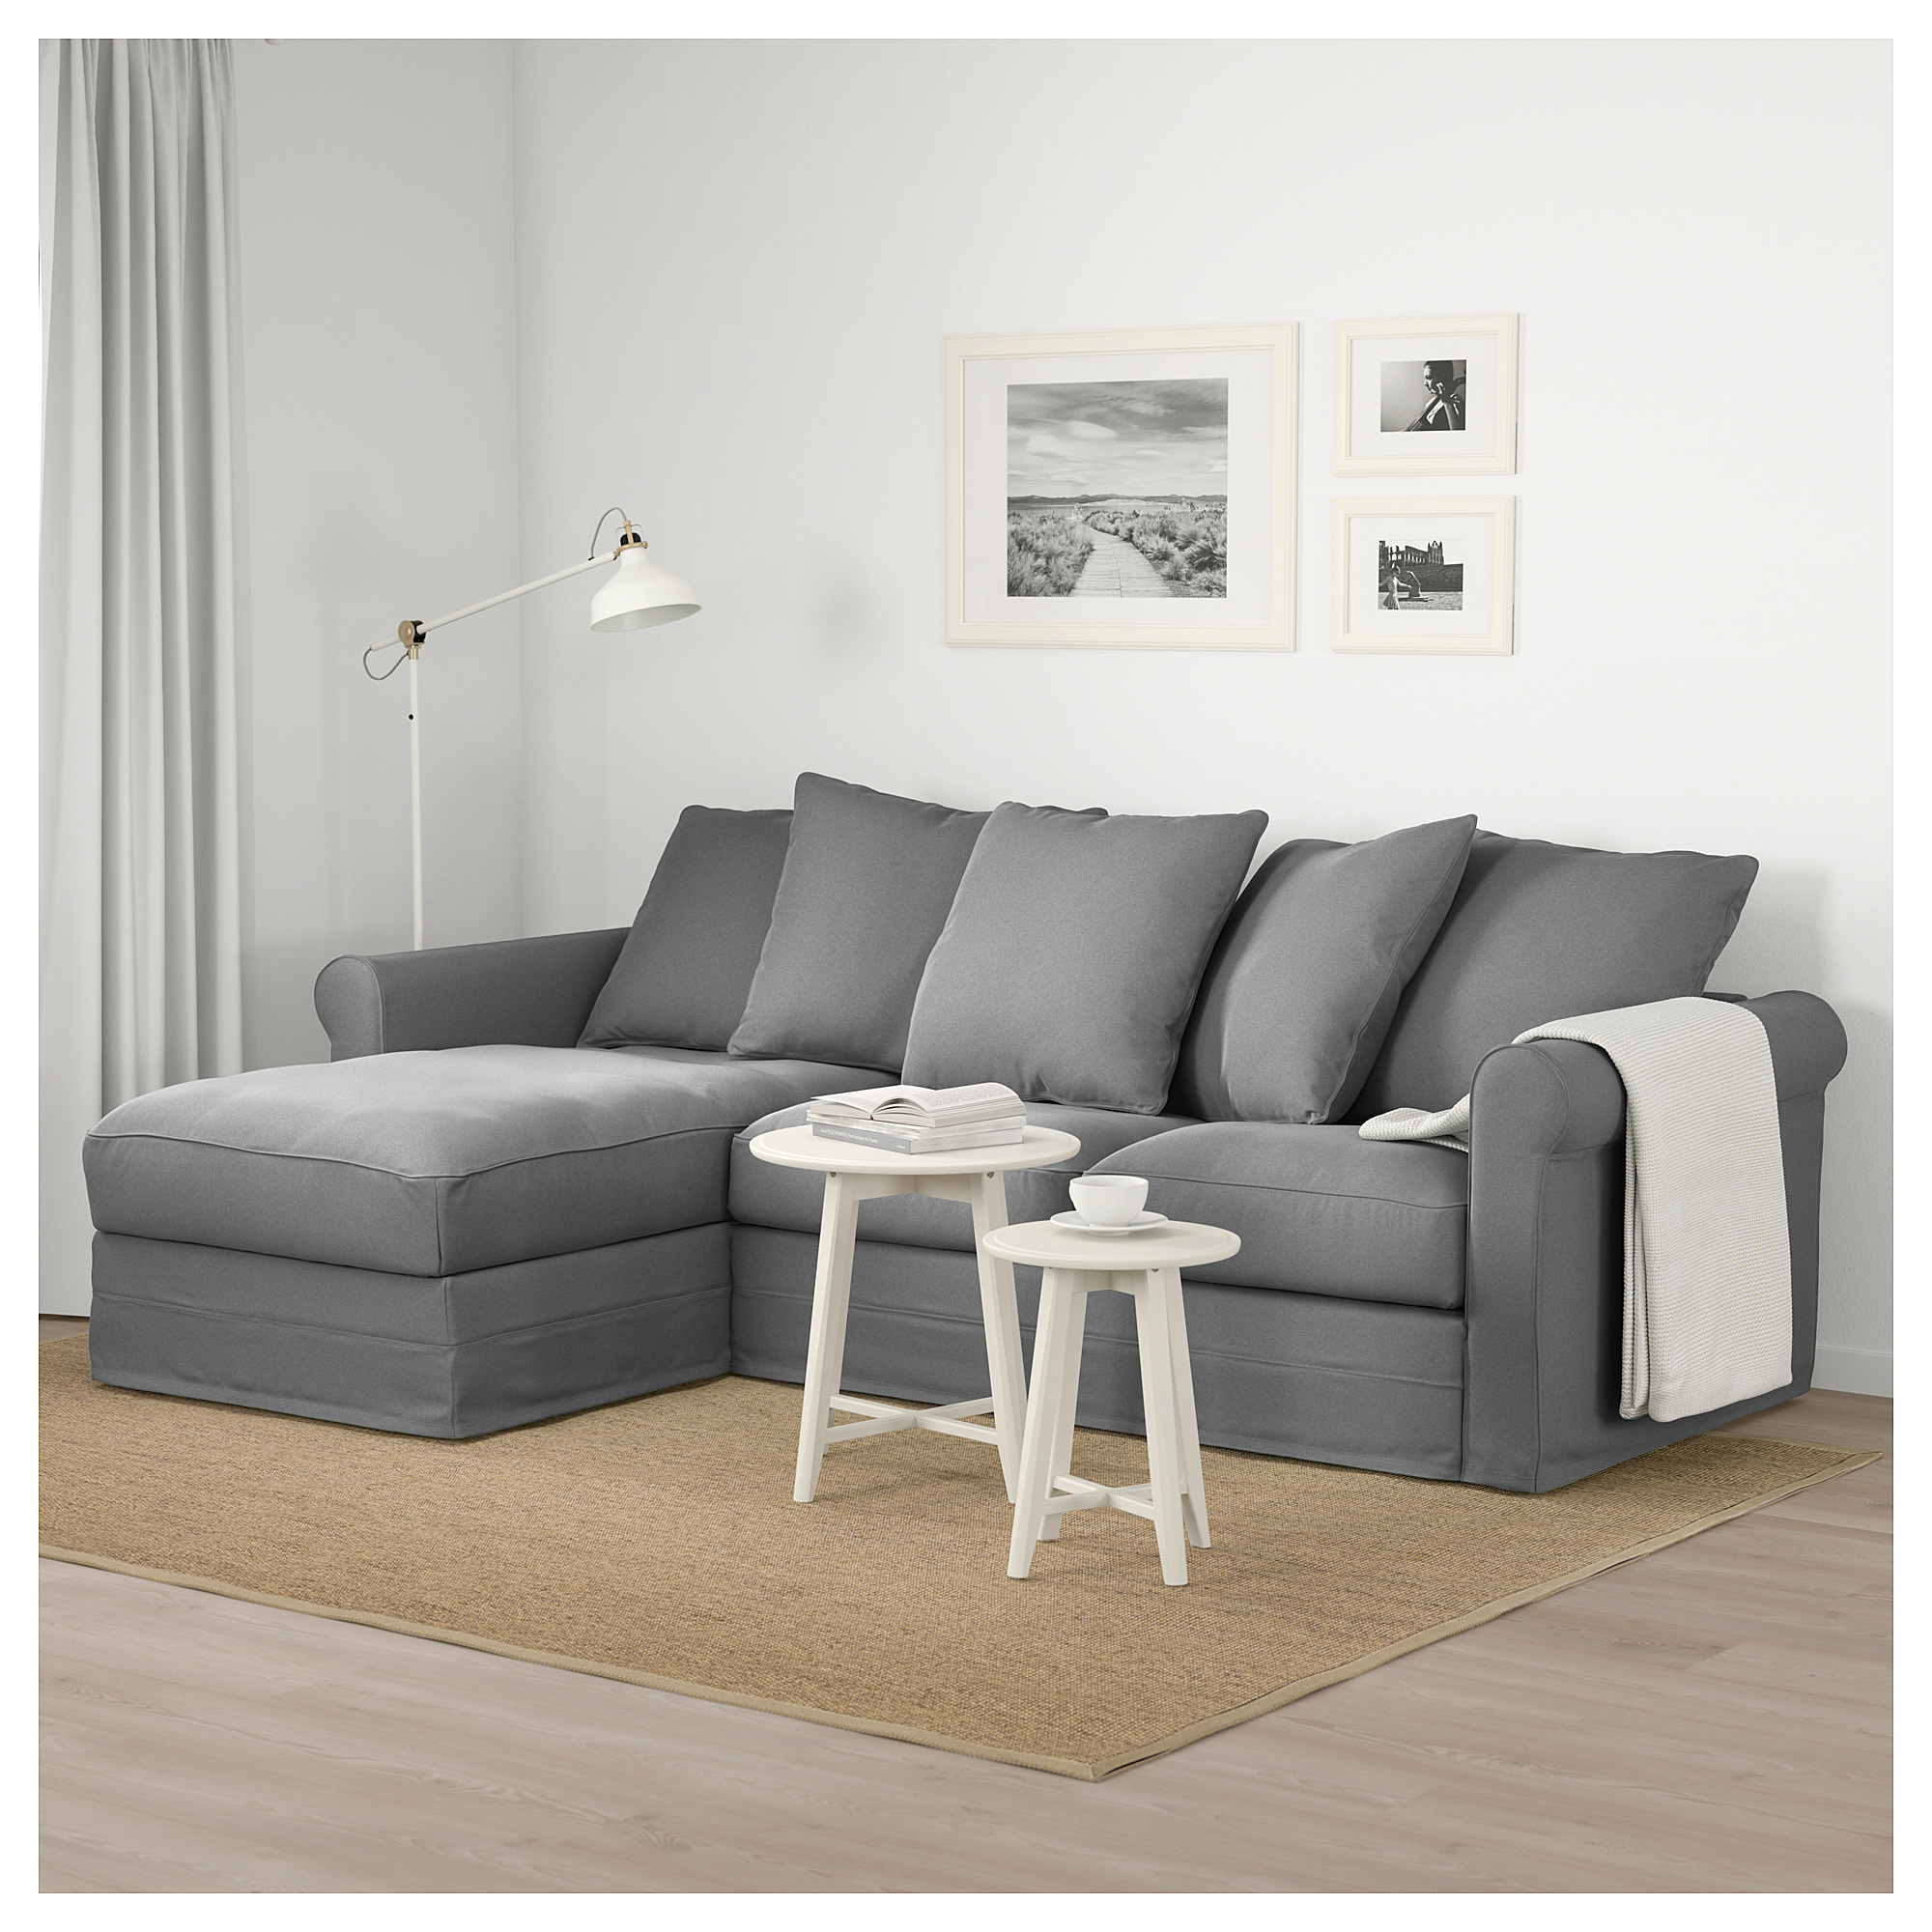 Ikea Gr 214 Nlid Sofa With Chaise Ljungen Medium Gray